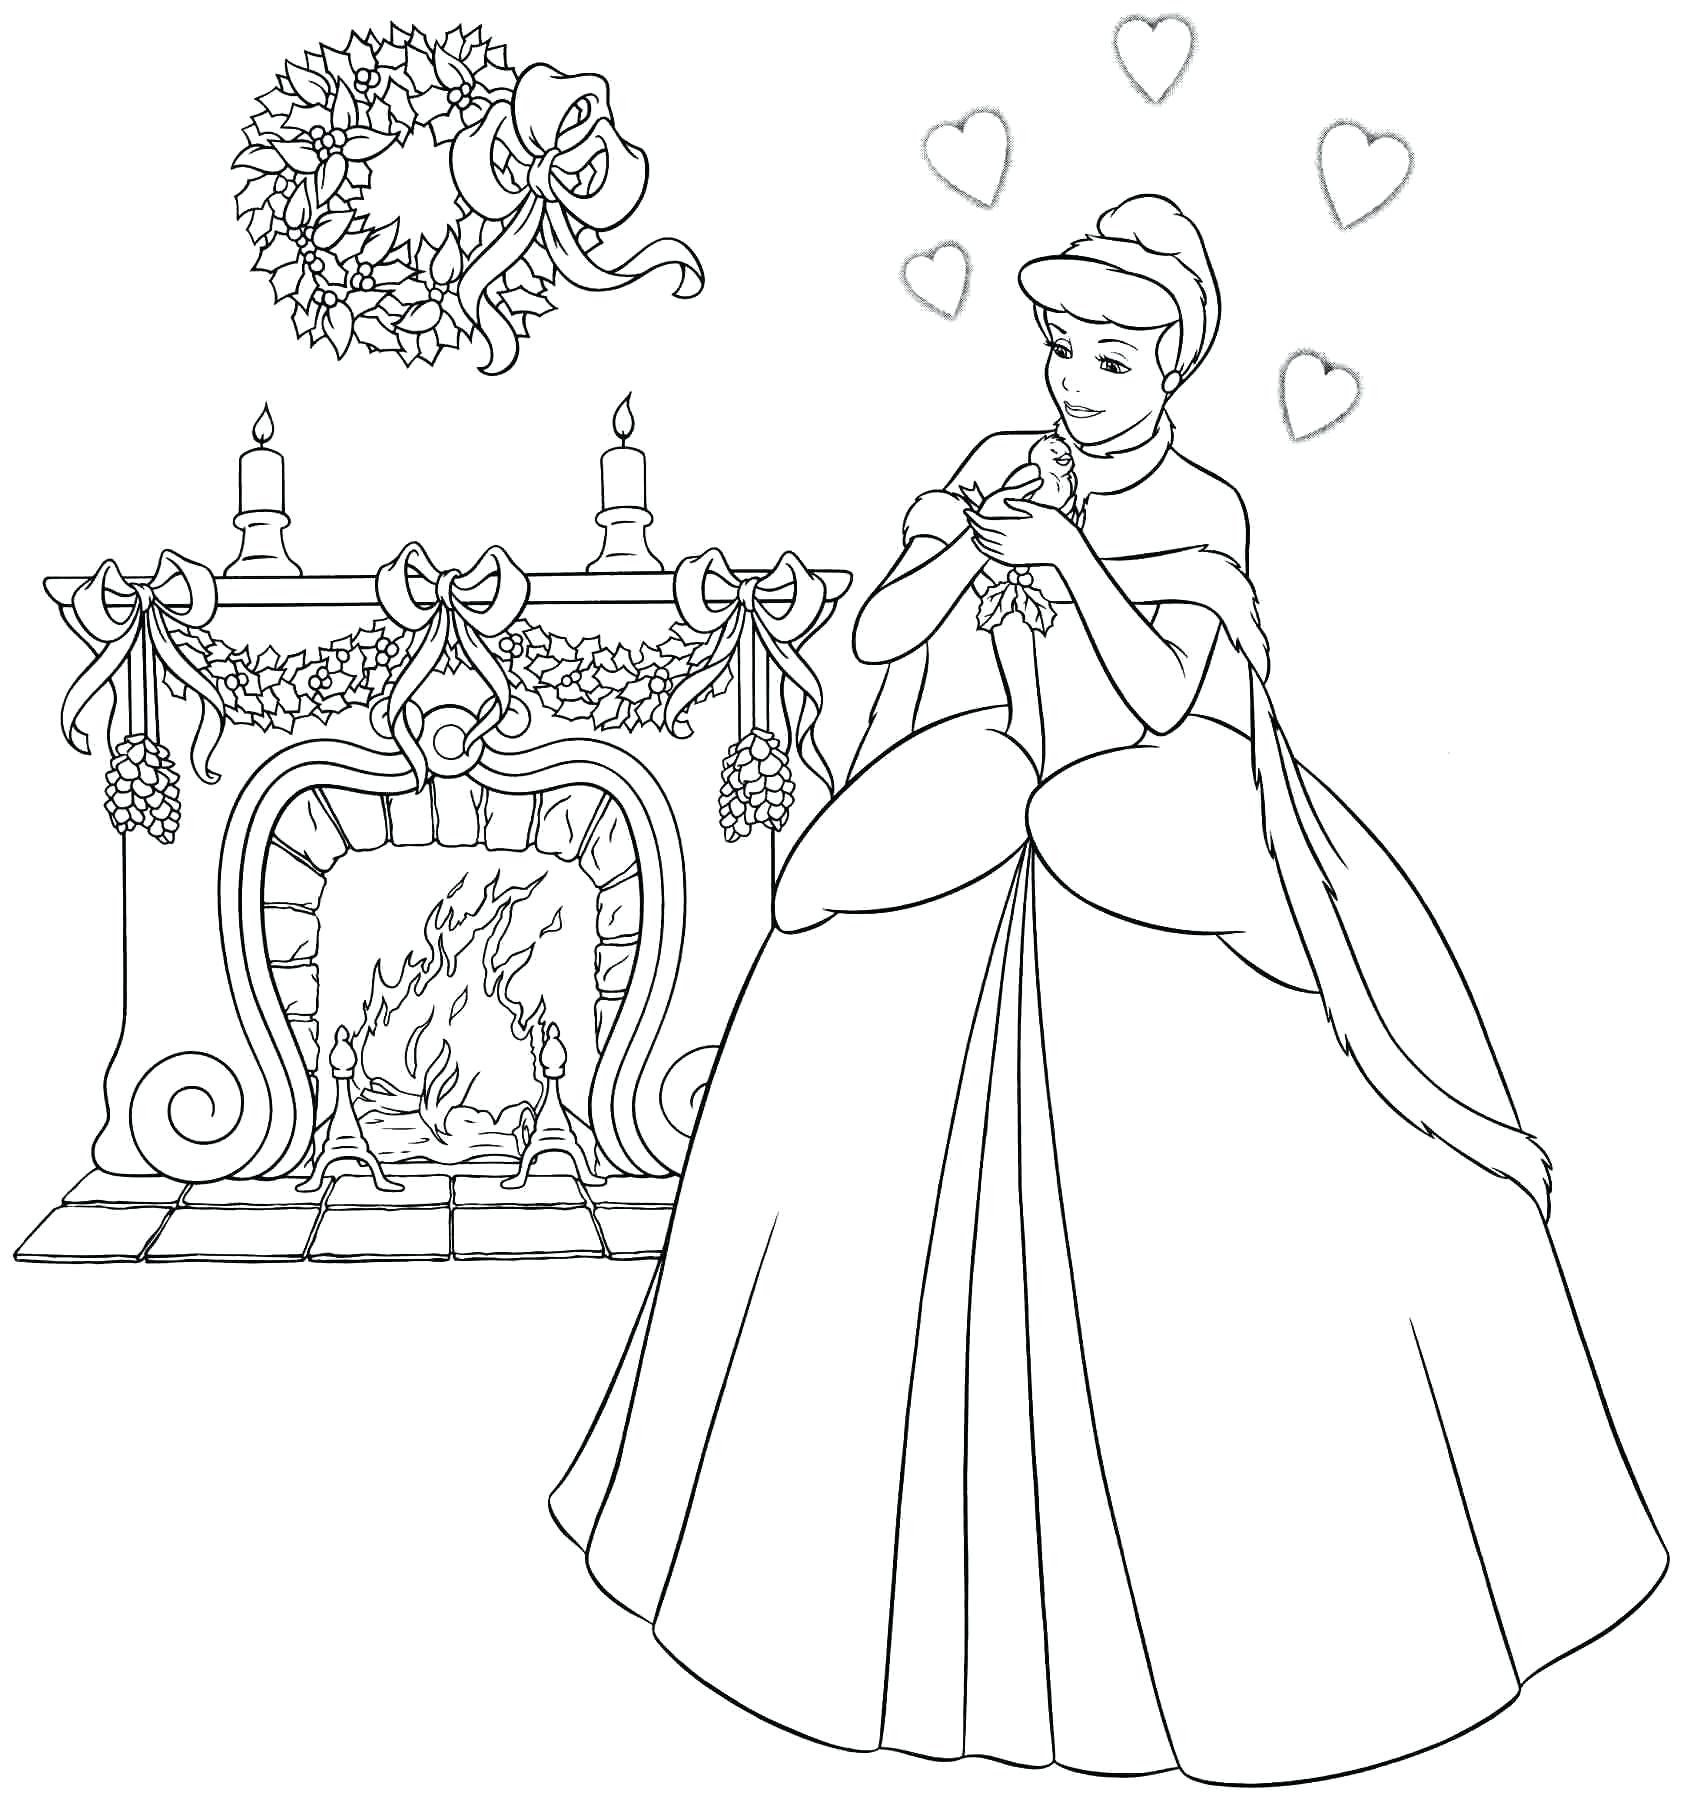 Disney Princess Castle Coloring Pages At Getdrawingscom Free For